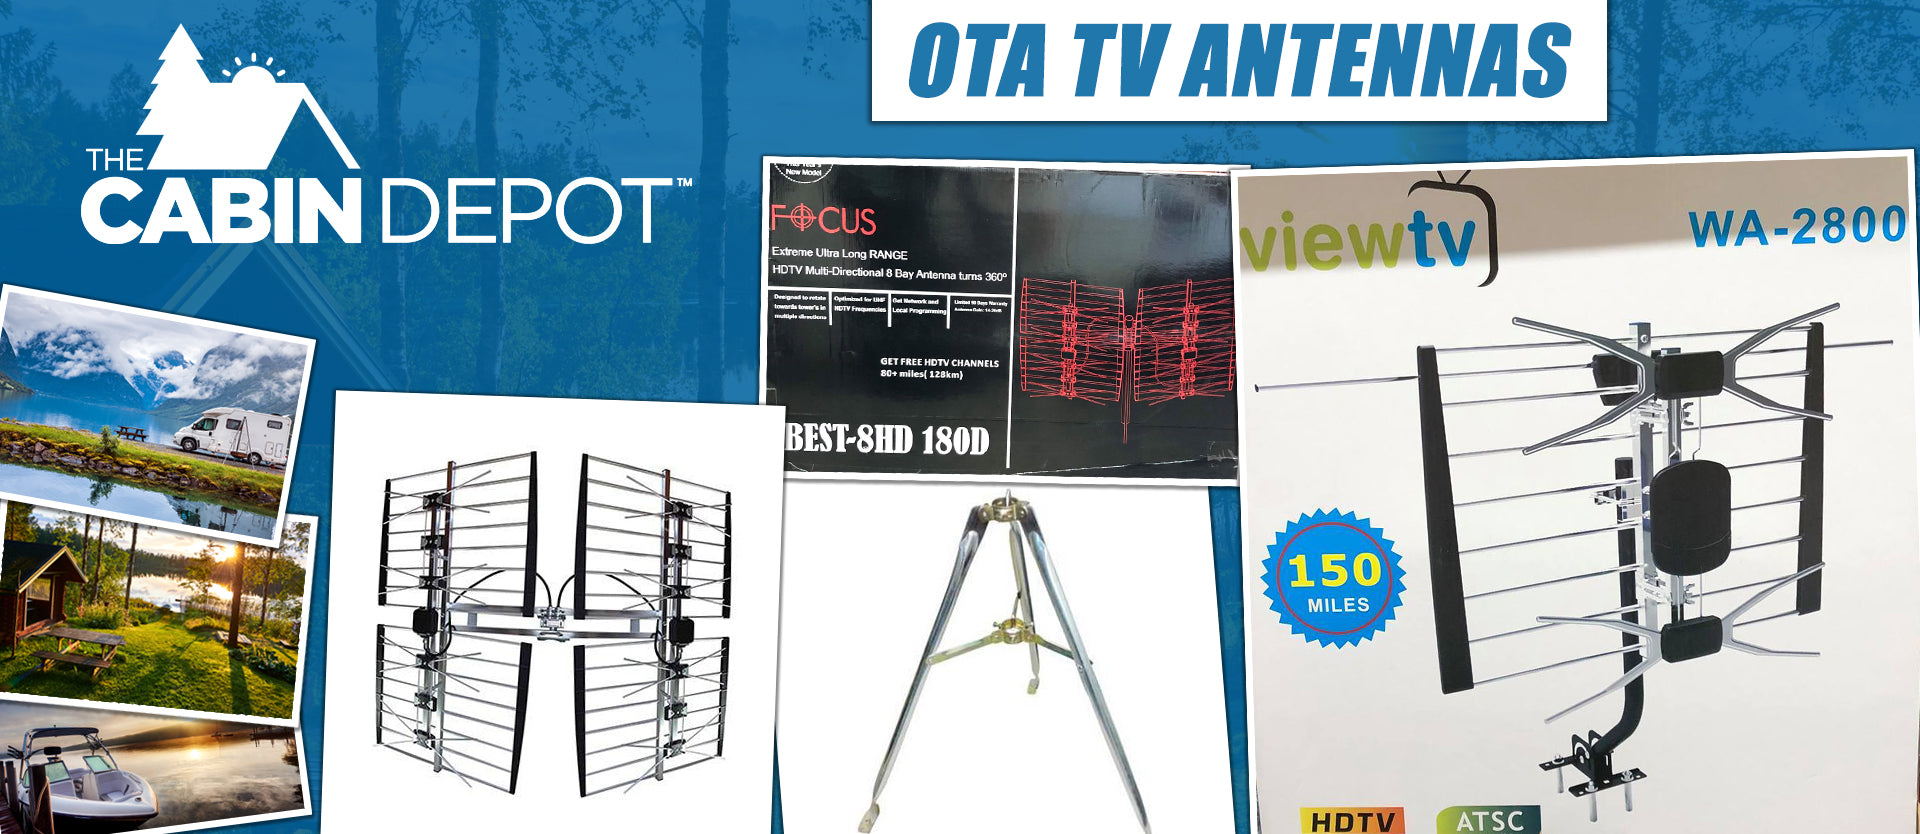 OTA TV Antenna Off Grid The Cabin Depot ™ Canada